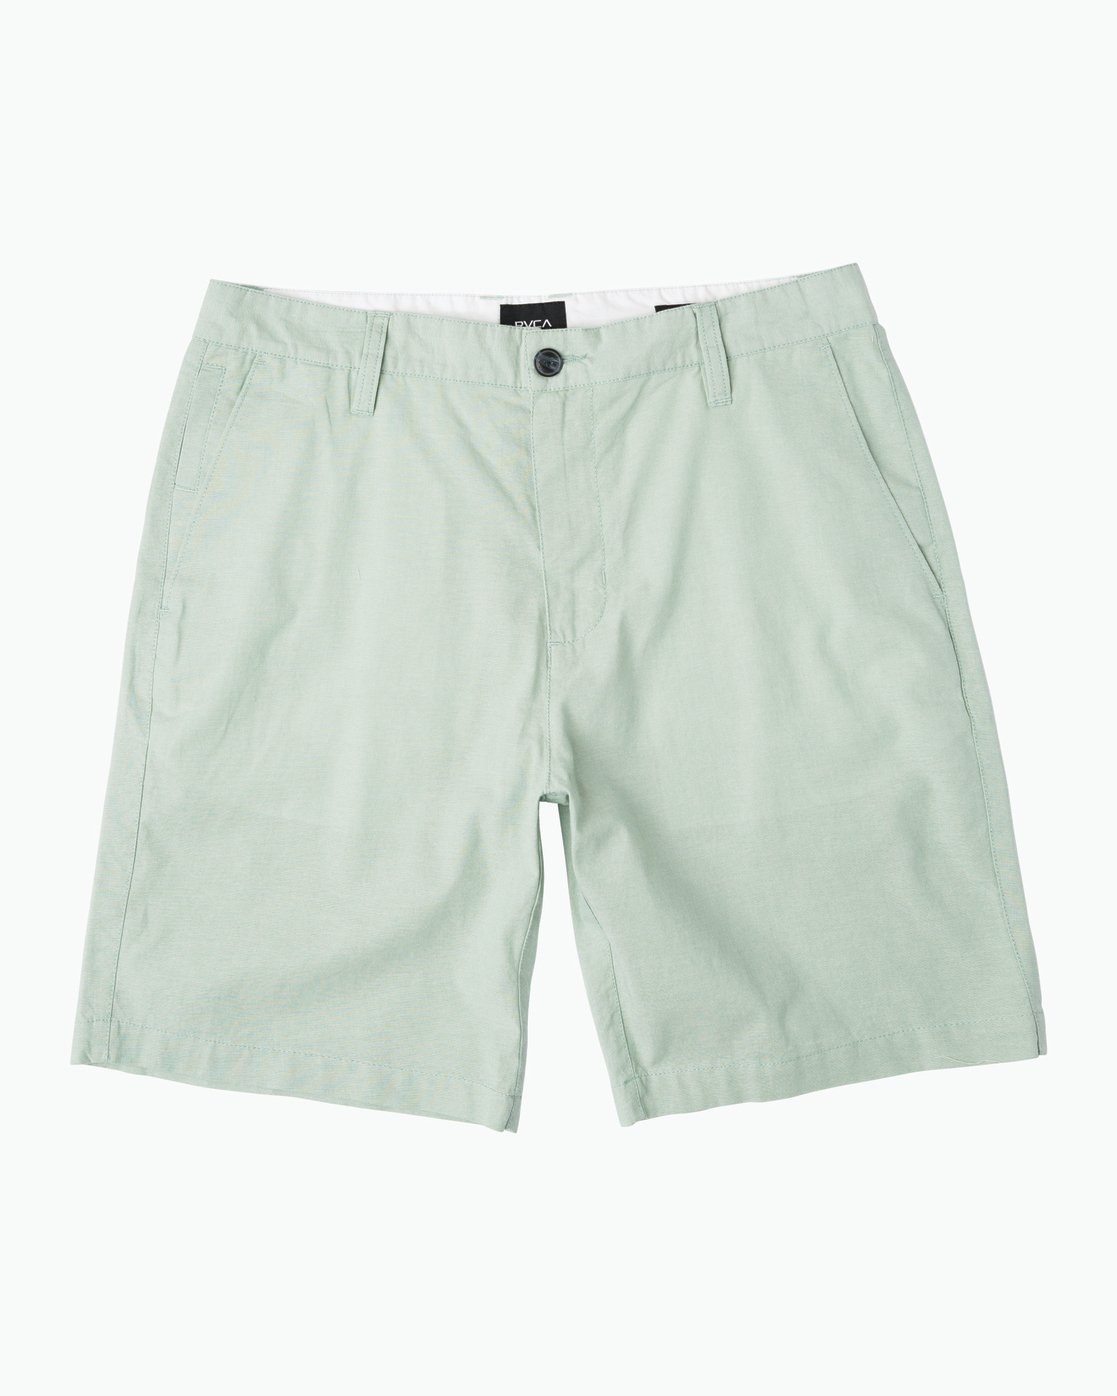 0 That'll Walk Oxford Short Green MJ214TWO RVCA